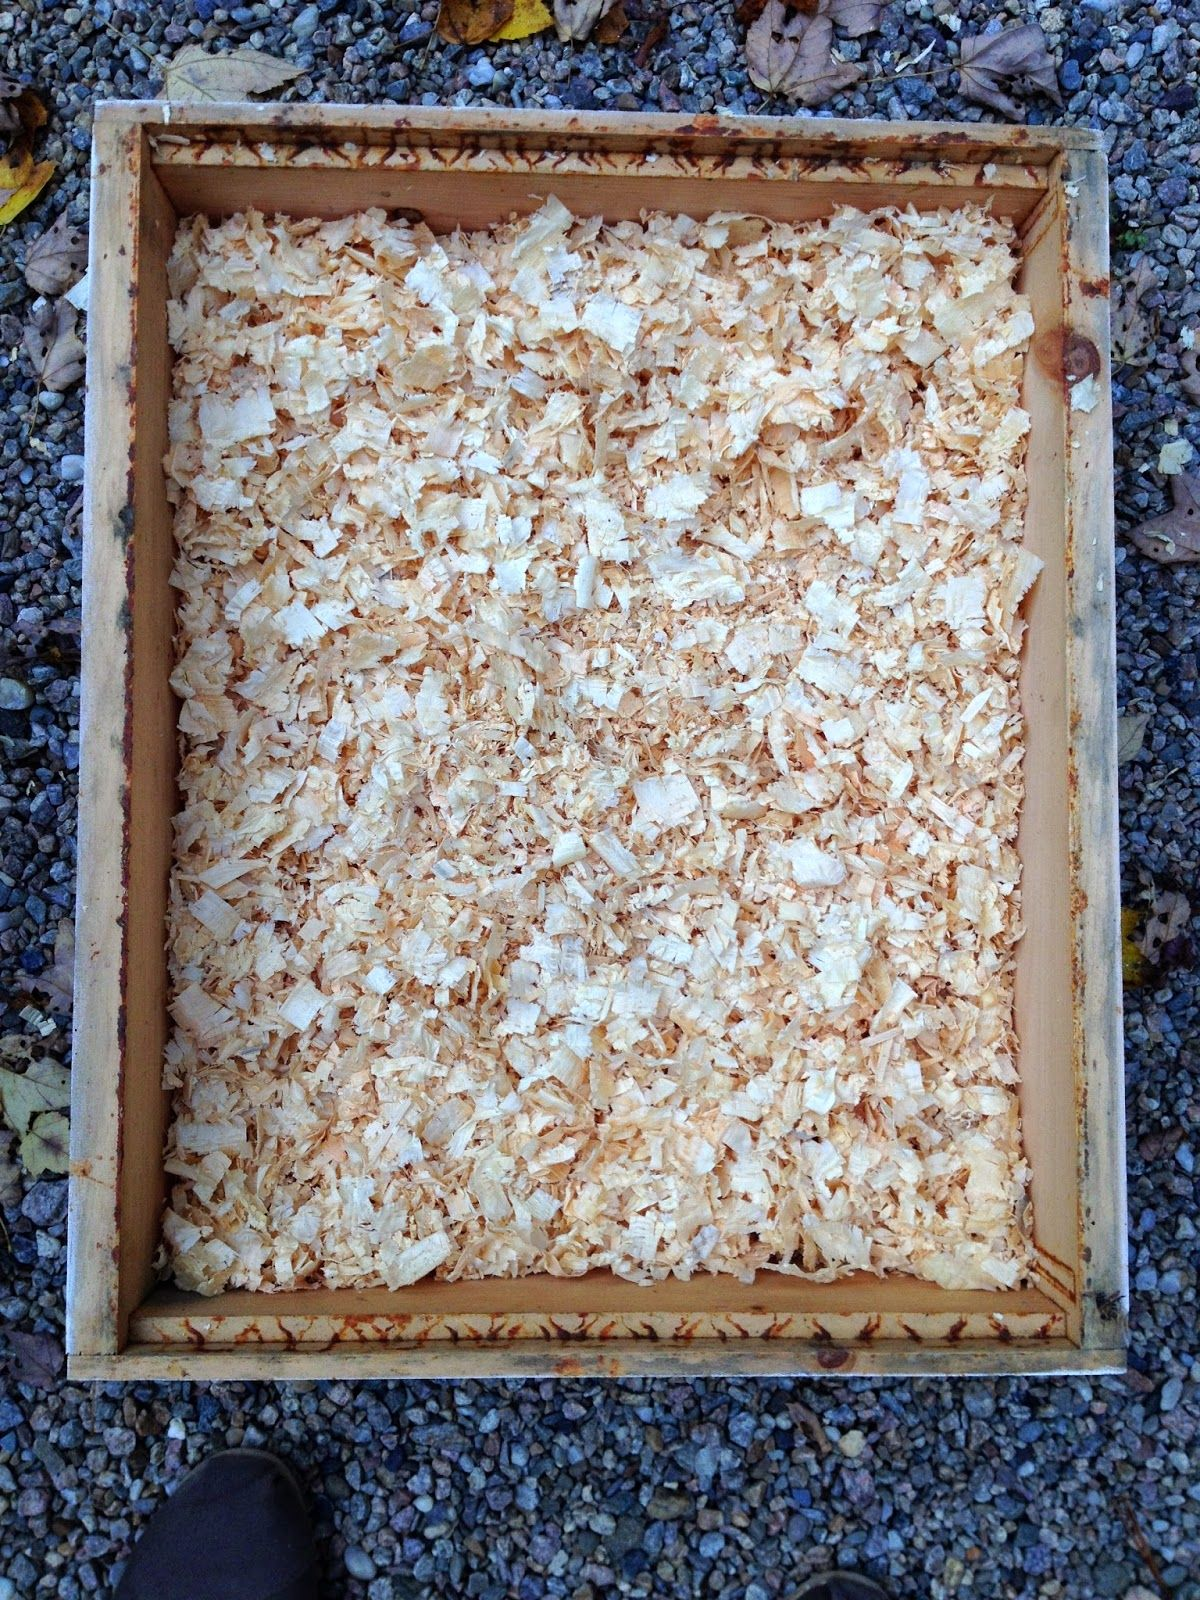 How to make a moisture quilt for a langstroth hive honey - Diy Winter Beehive Quilting Box To Help Prevent Moisture In The Hive